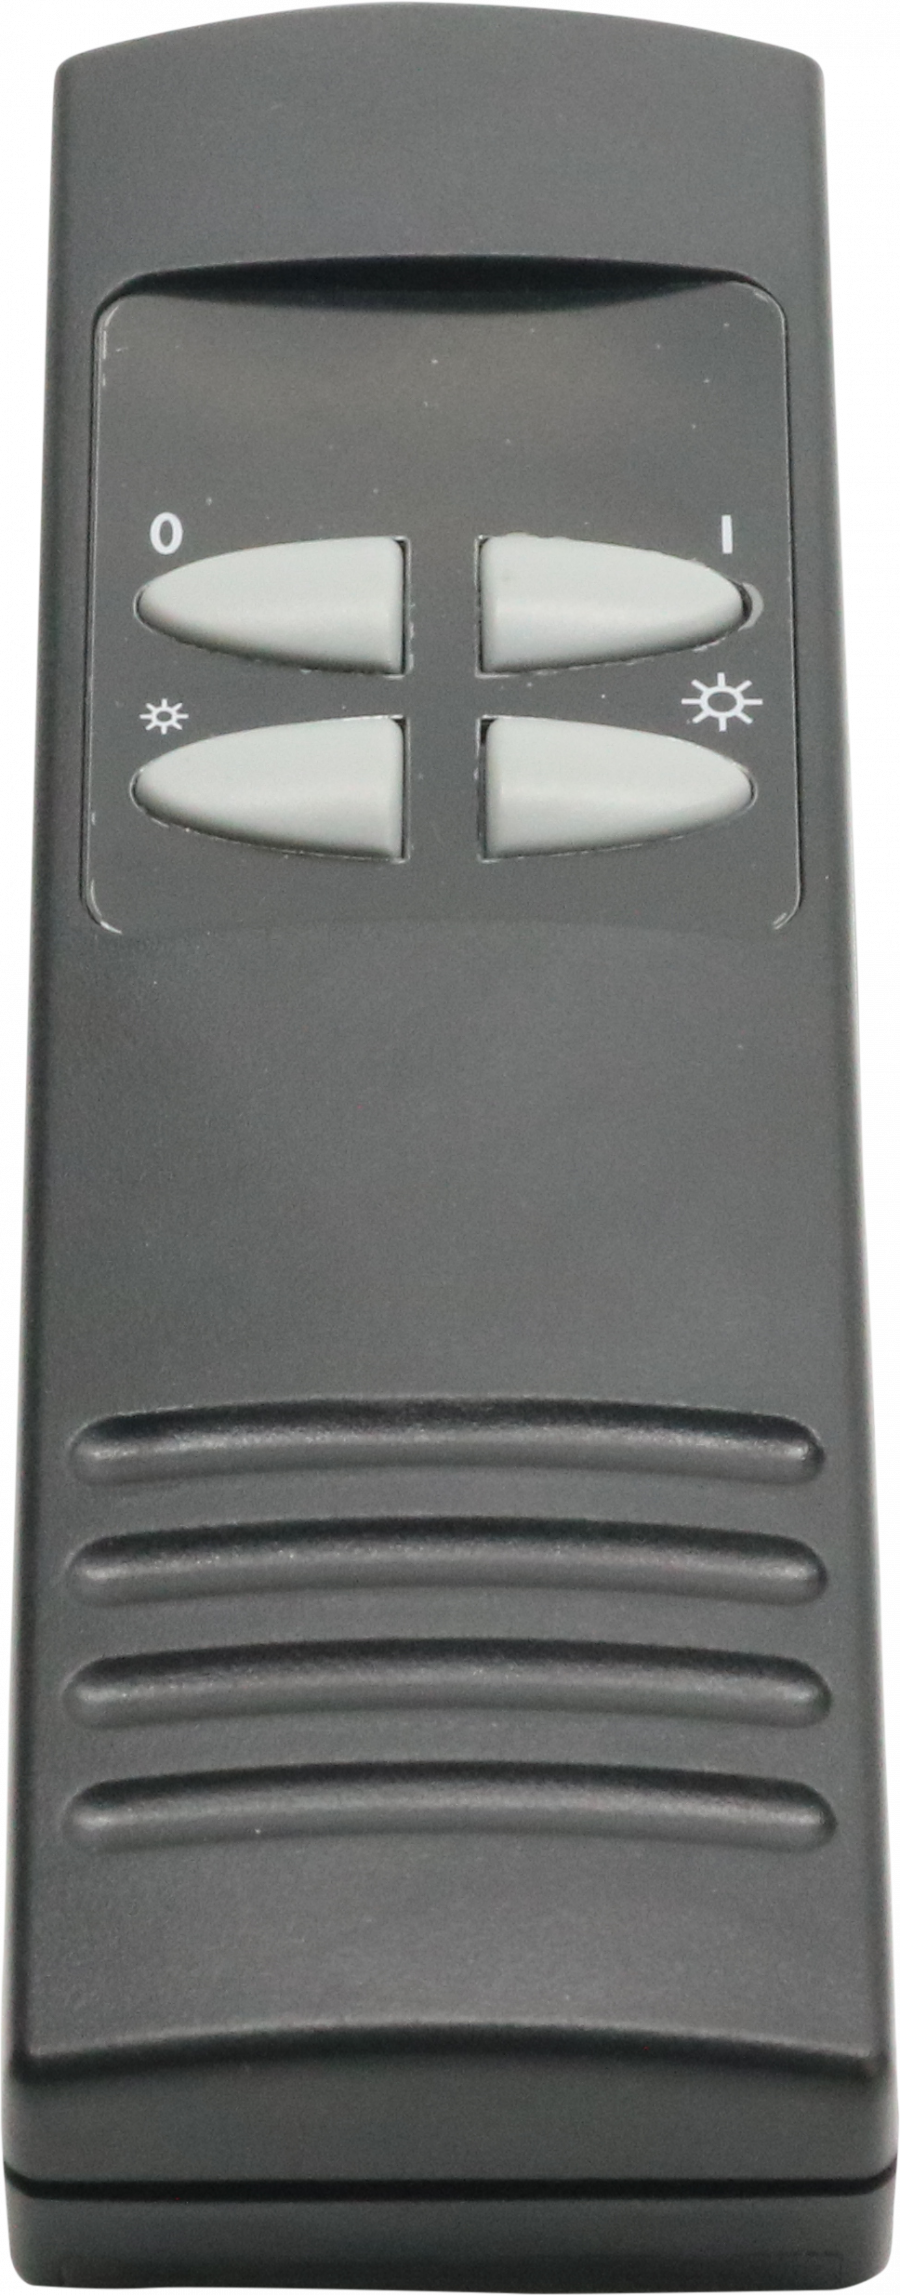 4 Button Remote Control Unit - FP04083 - 0